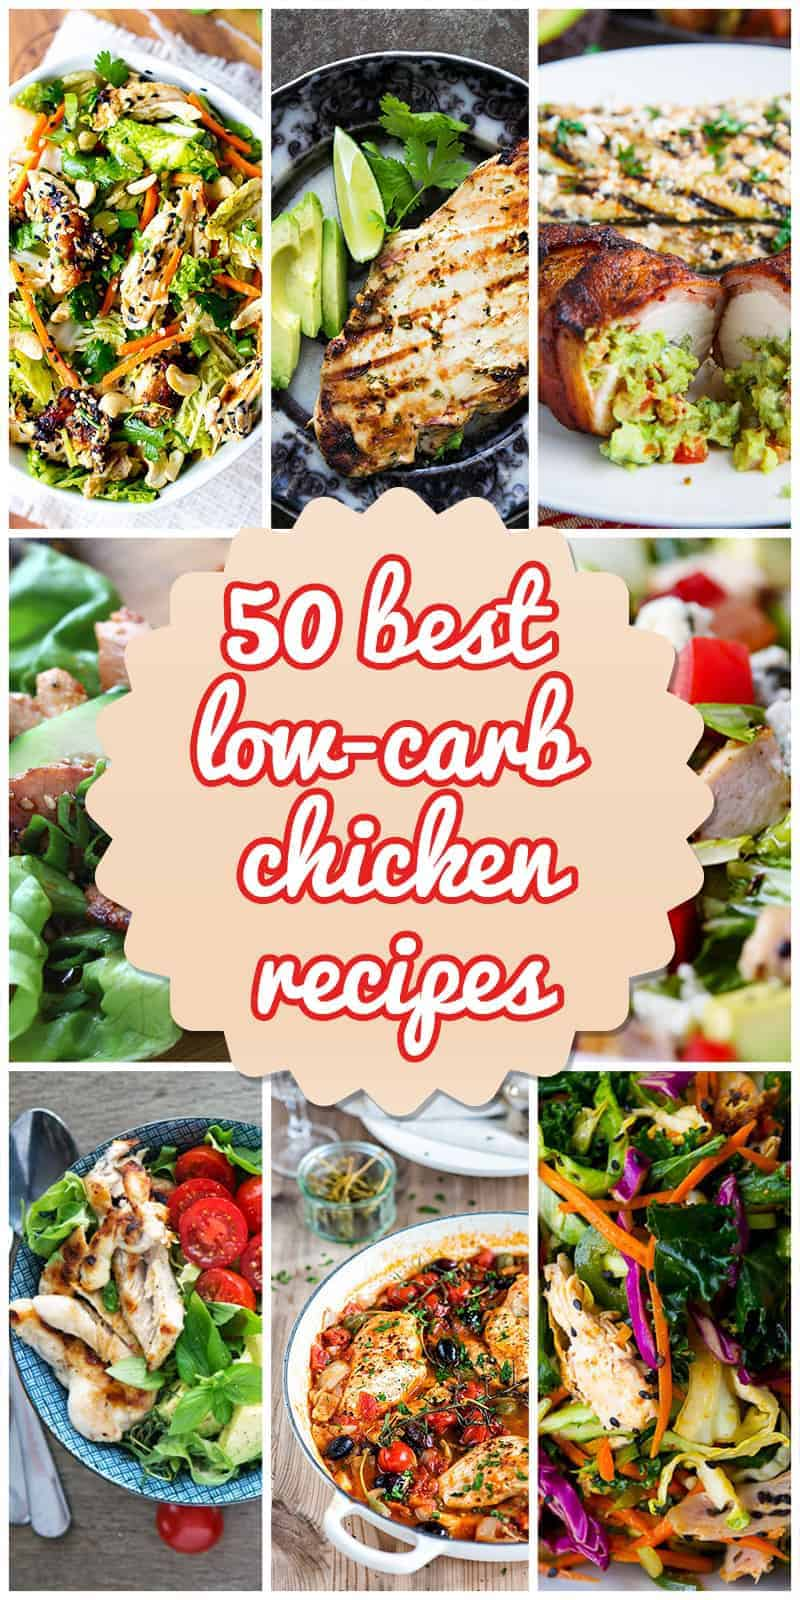 Low carb chicken sauce recipes